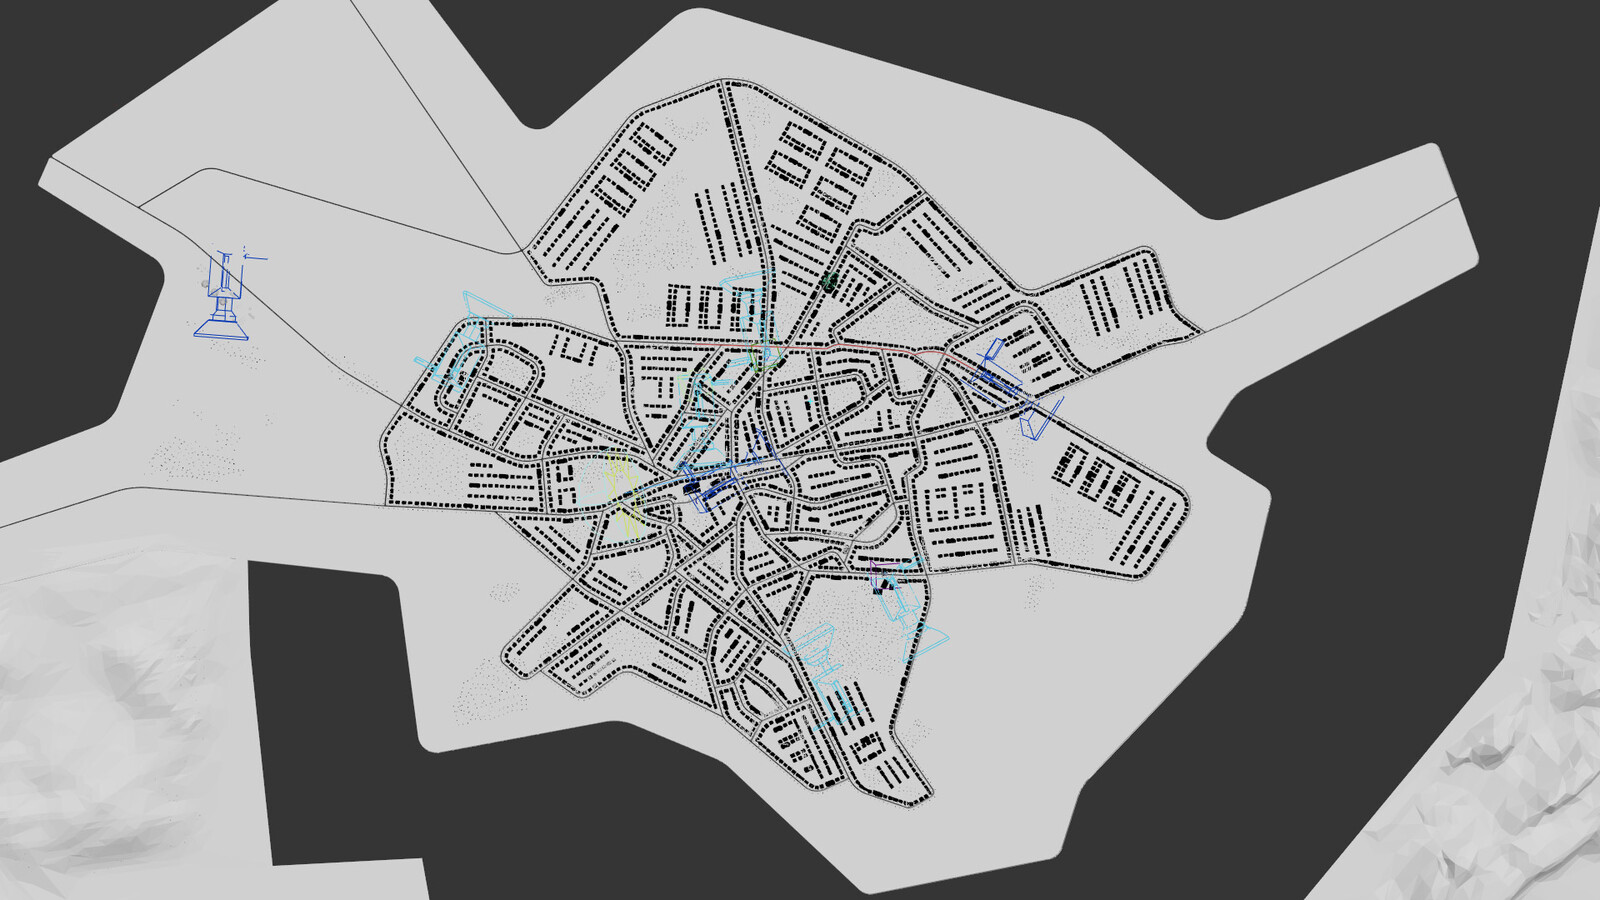 City map - Streets were built after the real city map